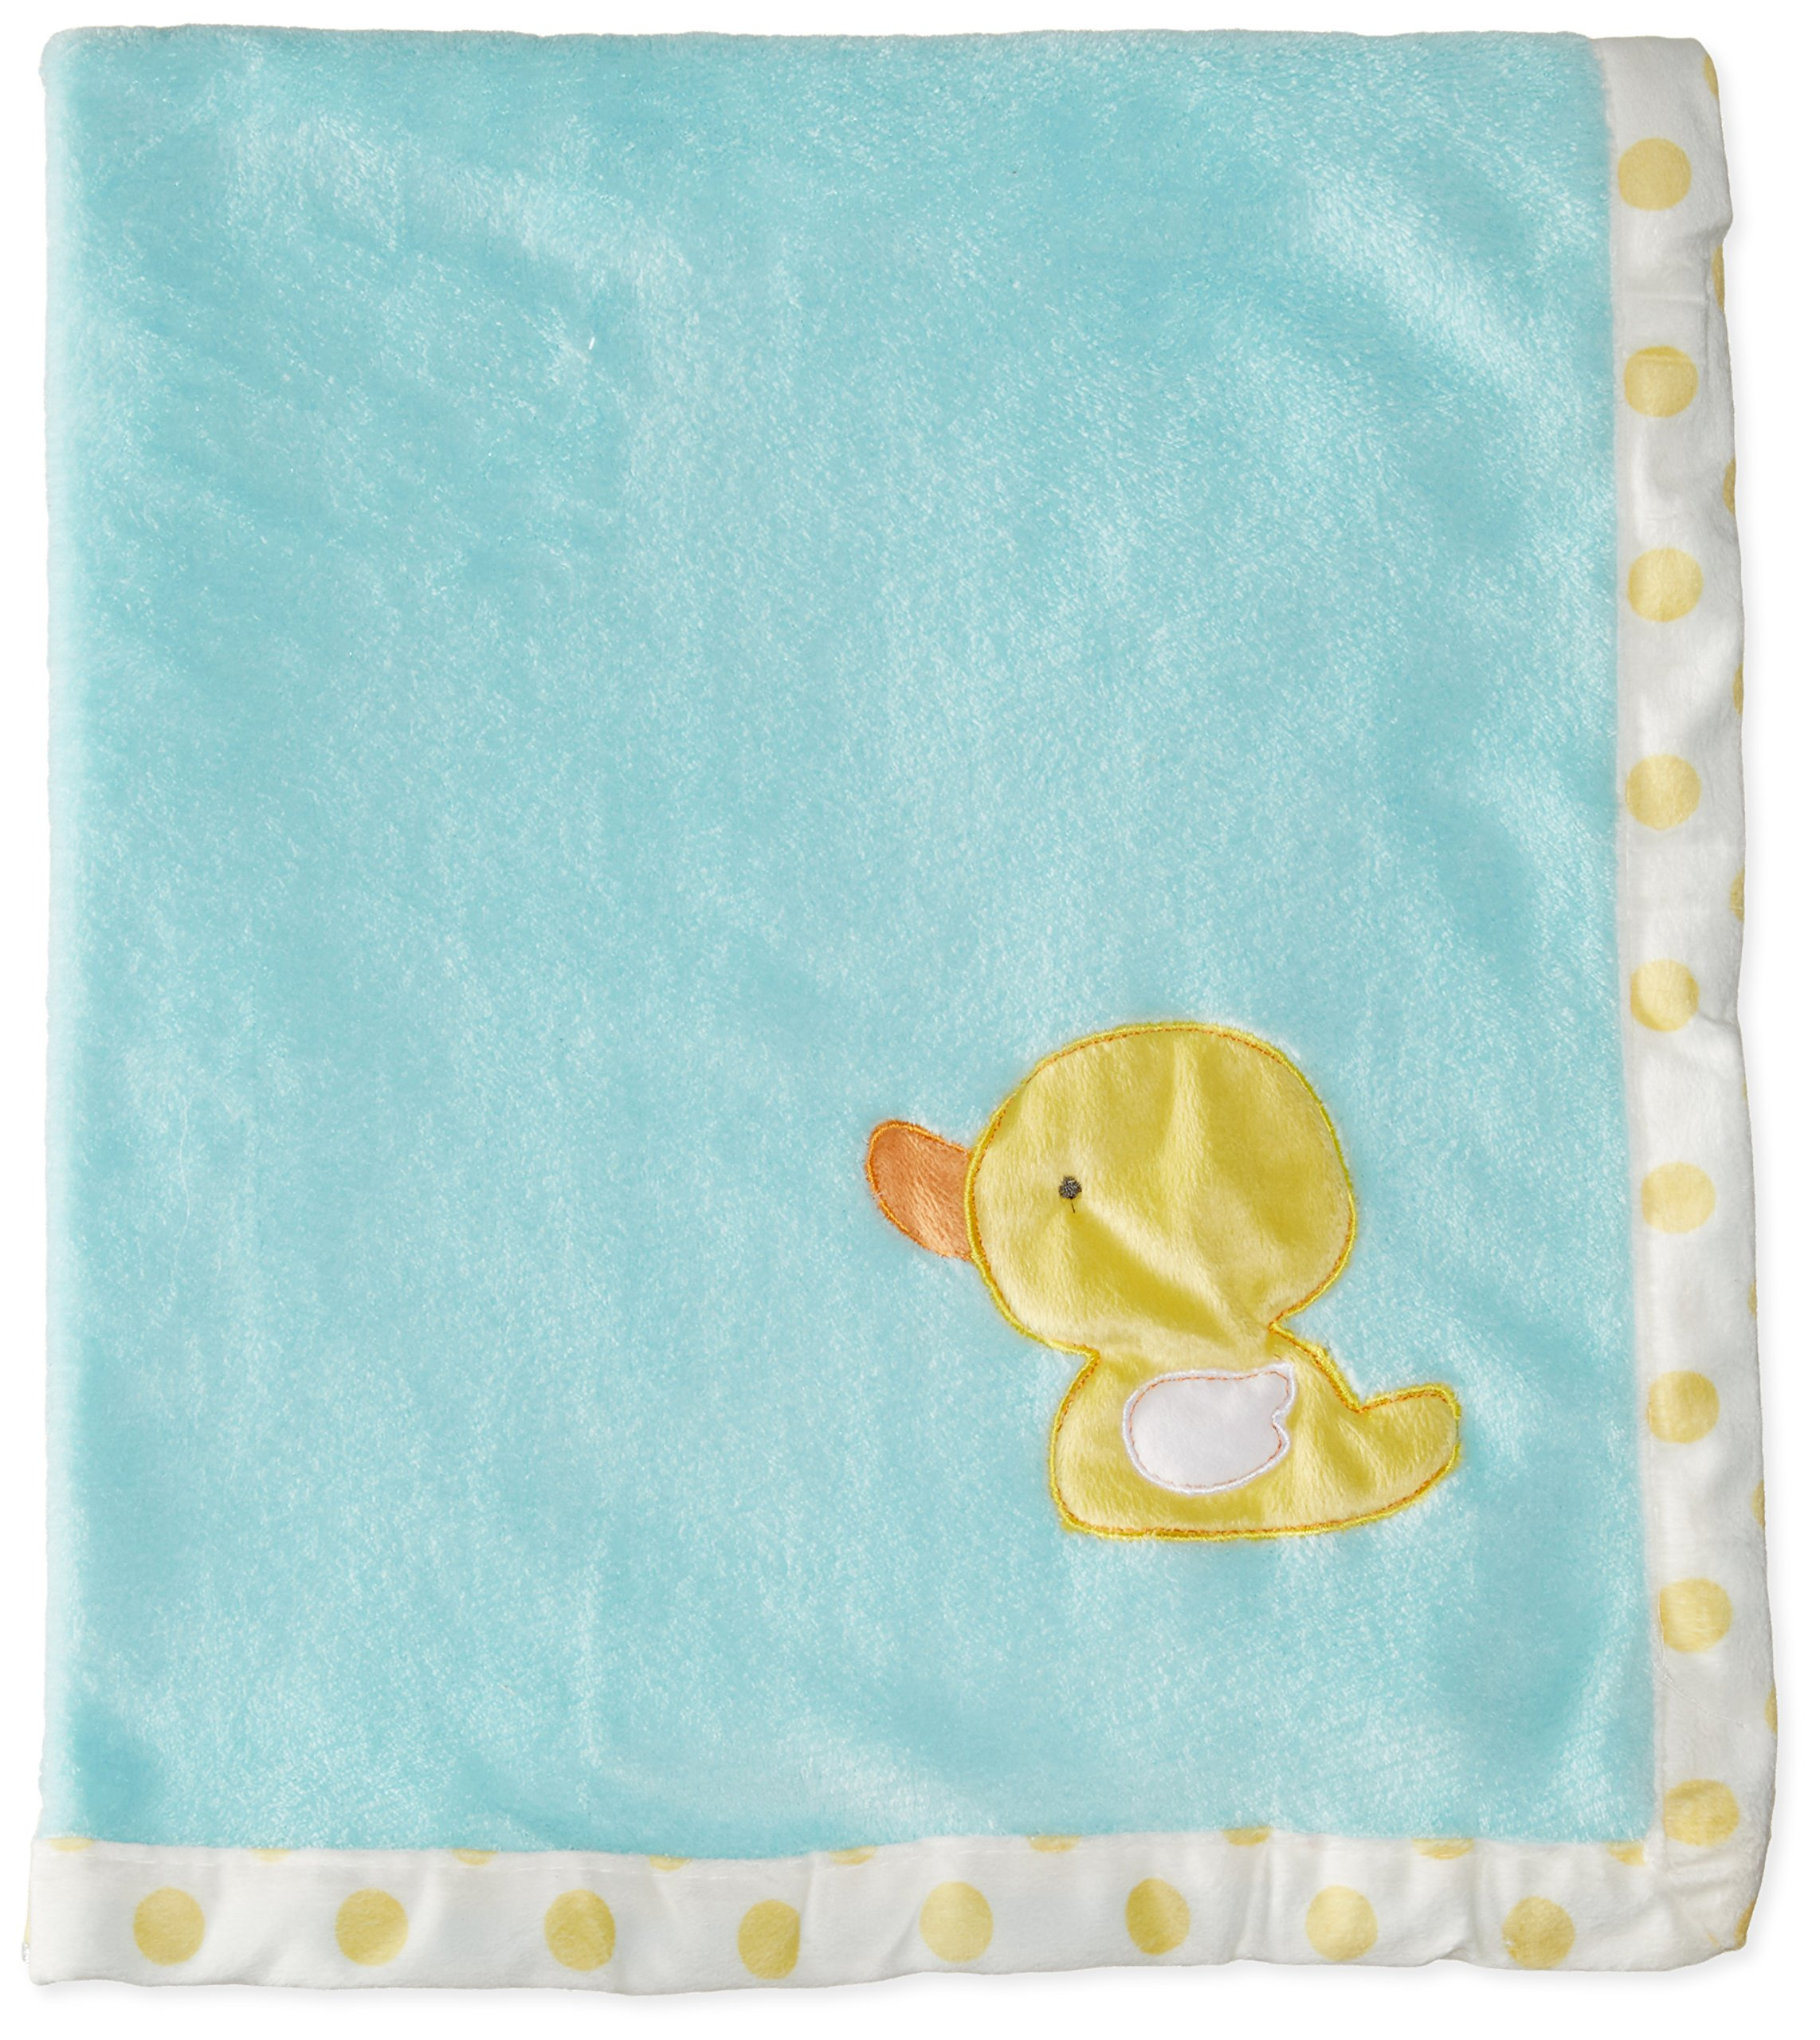 BON BEBE Baby Newborn Ducky Plush Coral Fleece Blanket, Multi, New Born by Bon Bebe